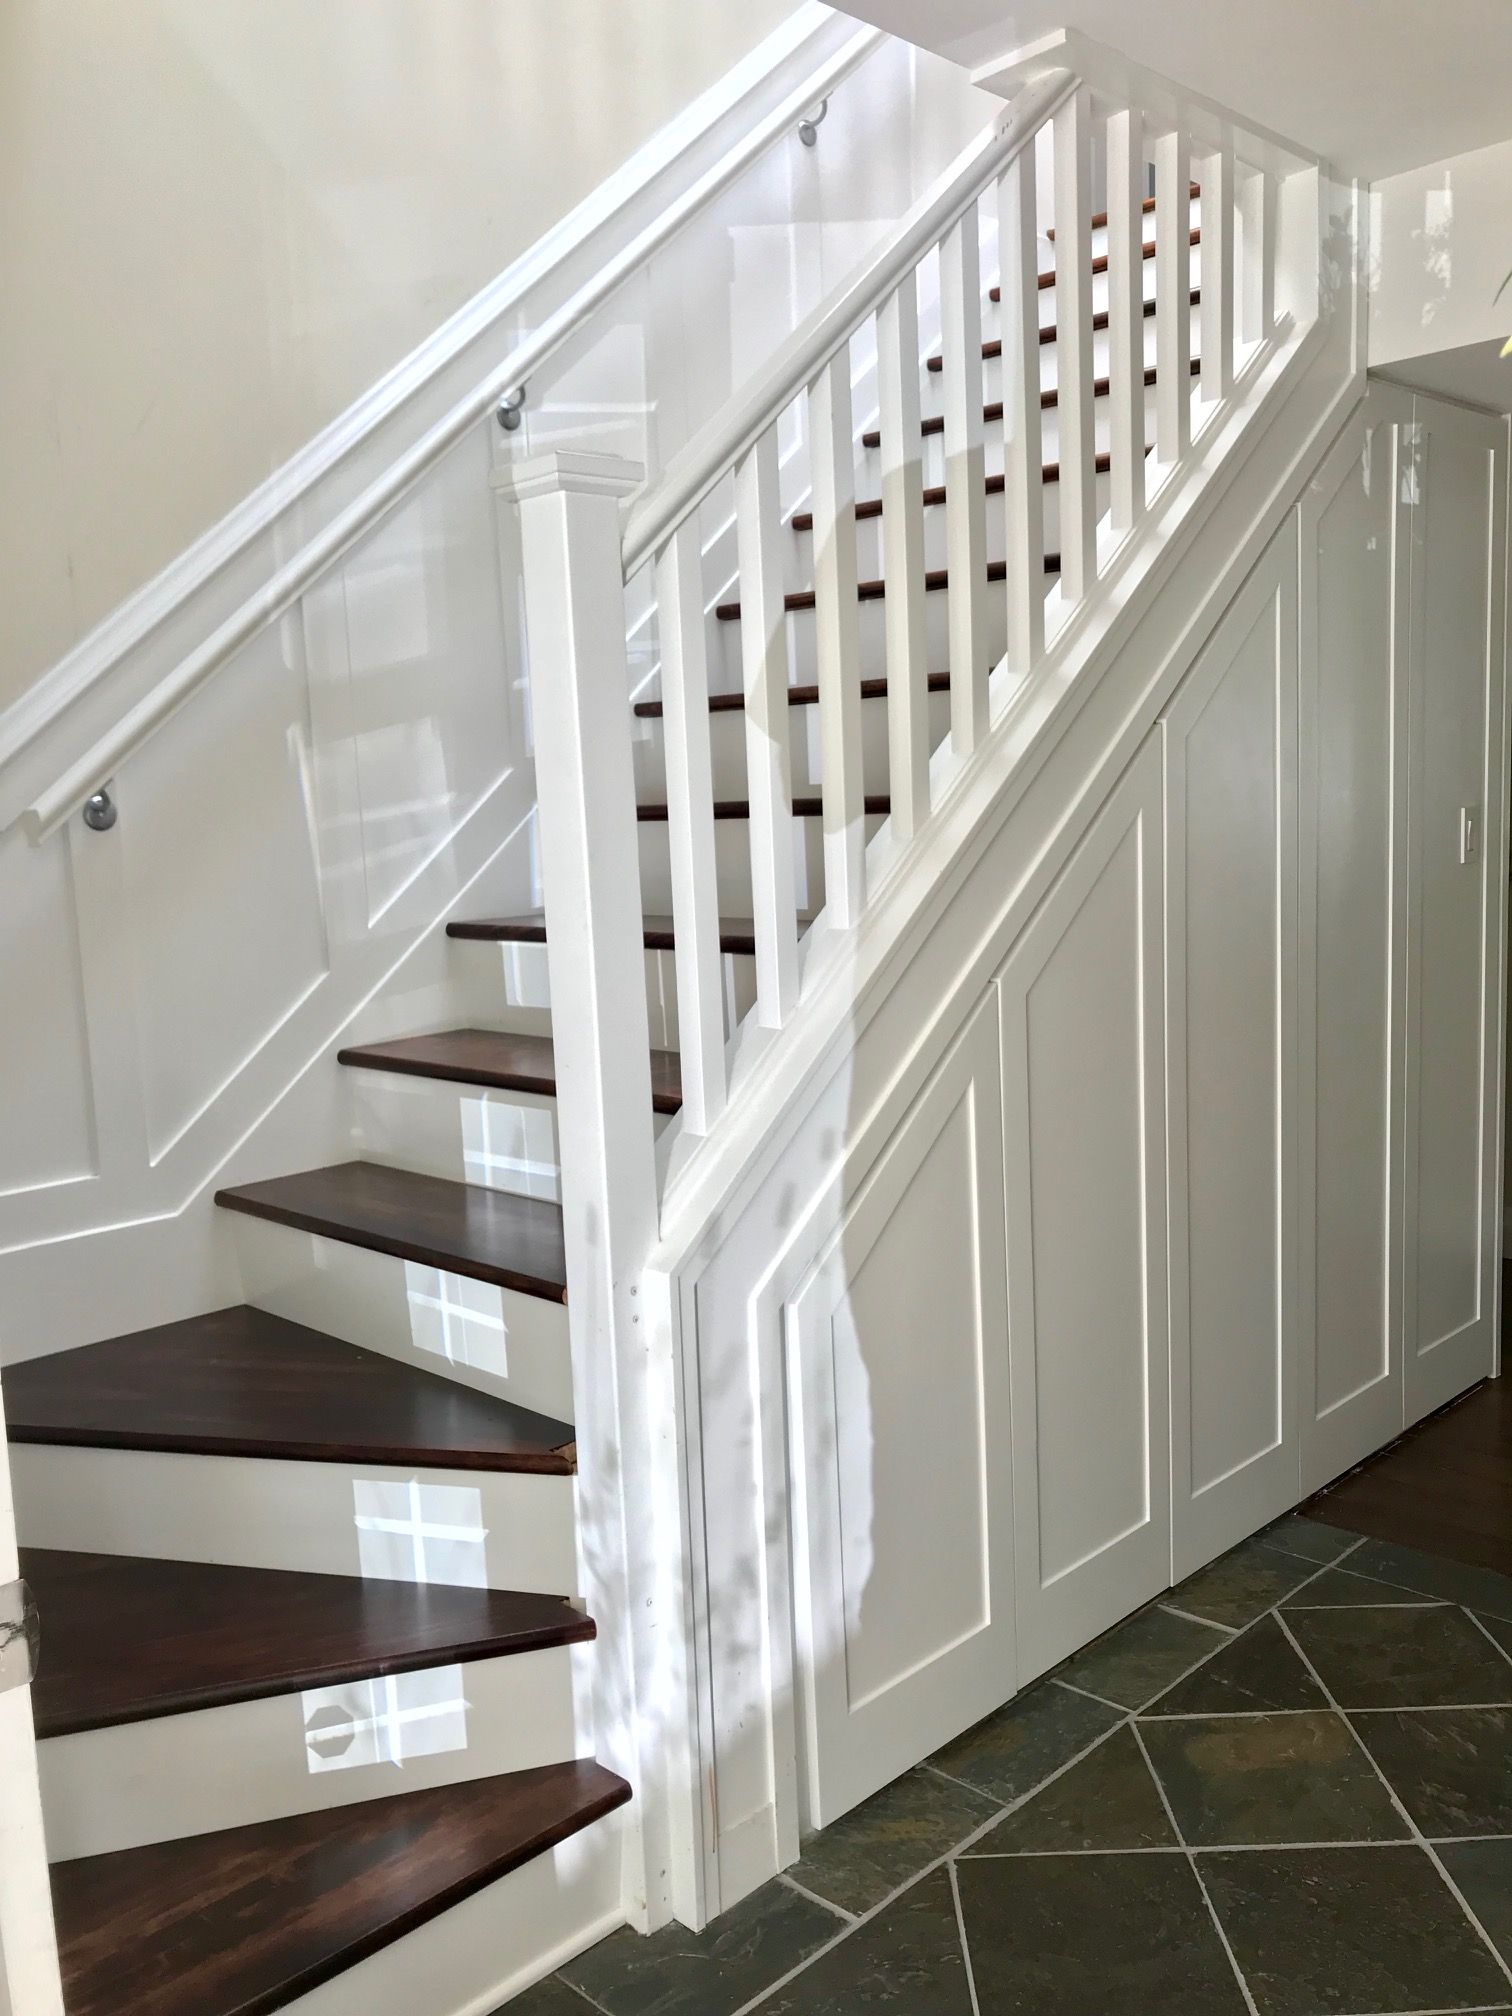 Stairs, Foyer, Storage, Wainscoting